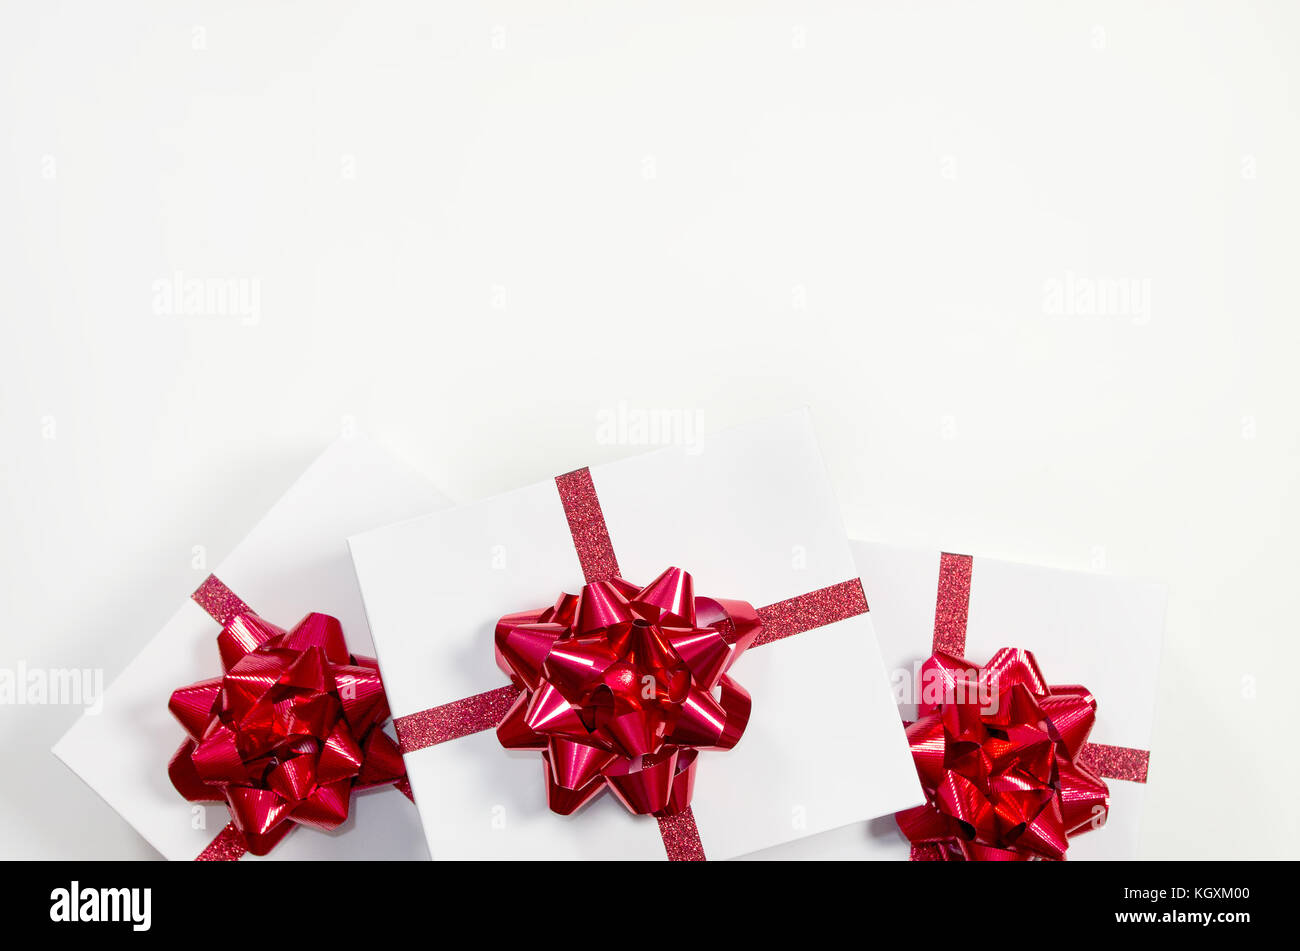 Three Christmas presents with red bows on a white background - Stock Image